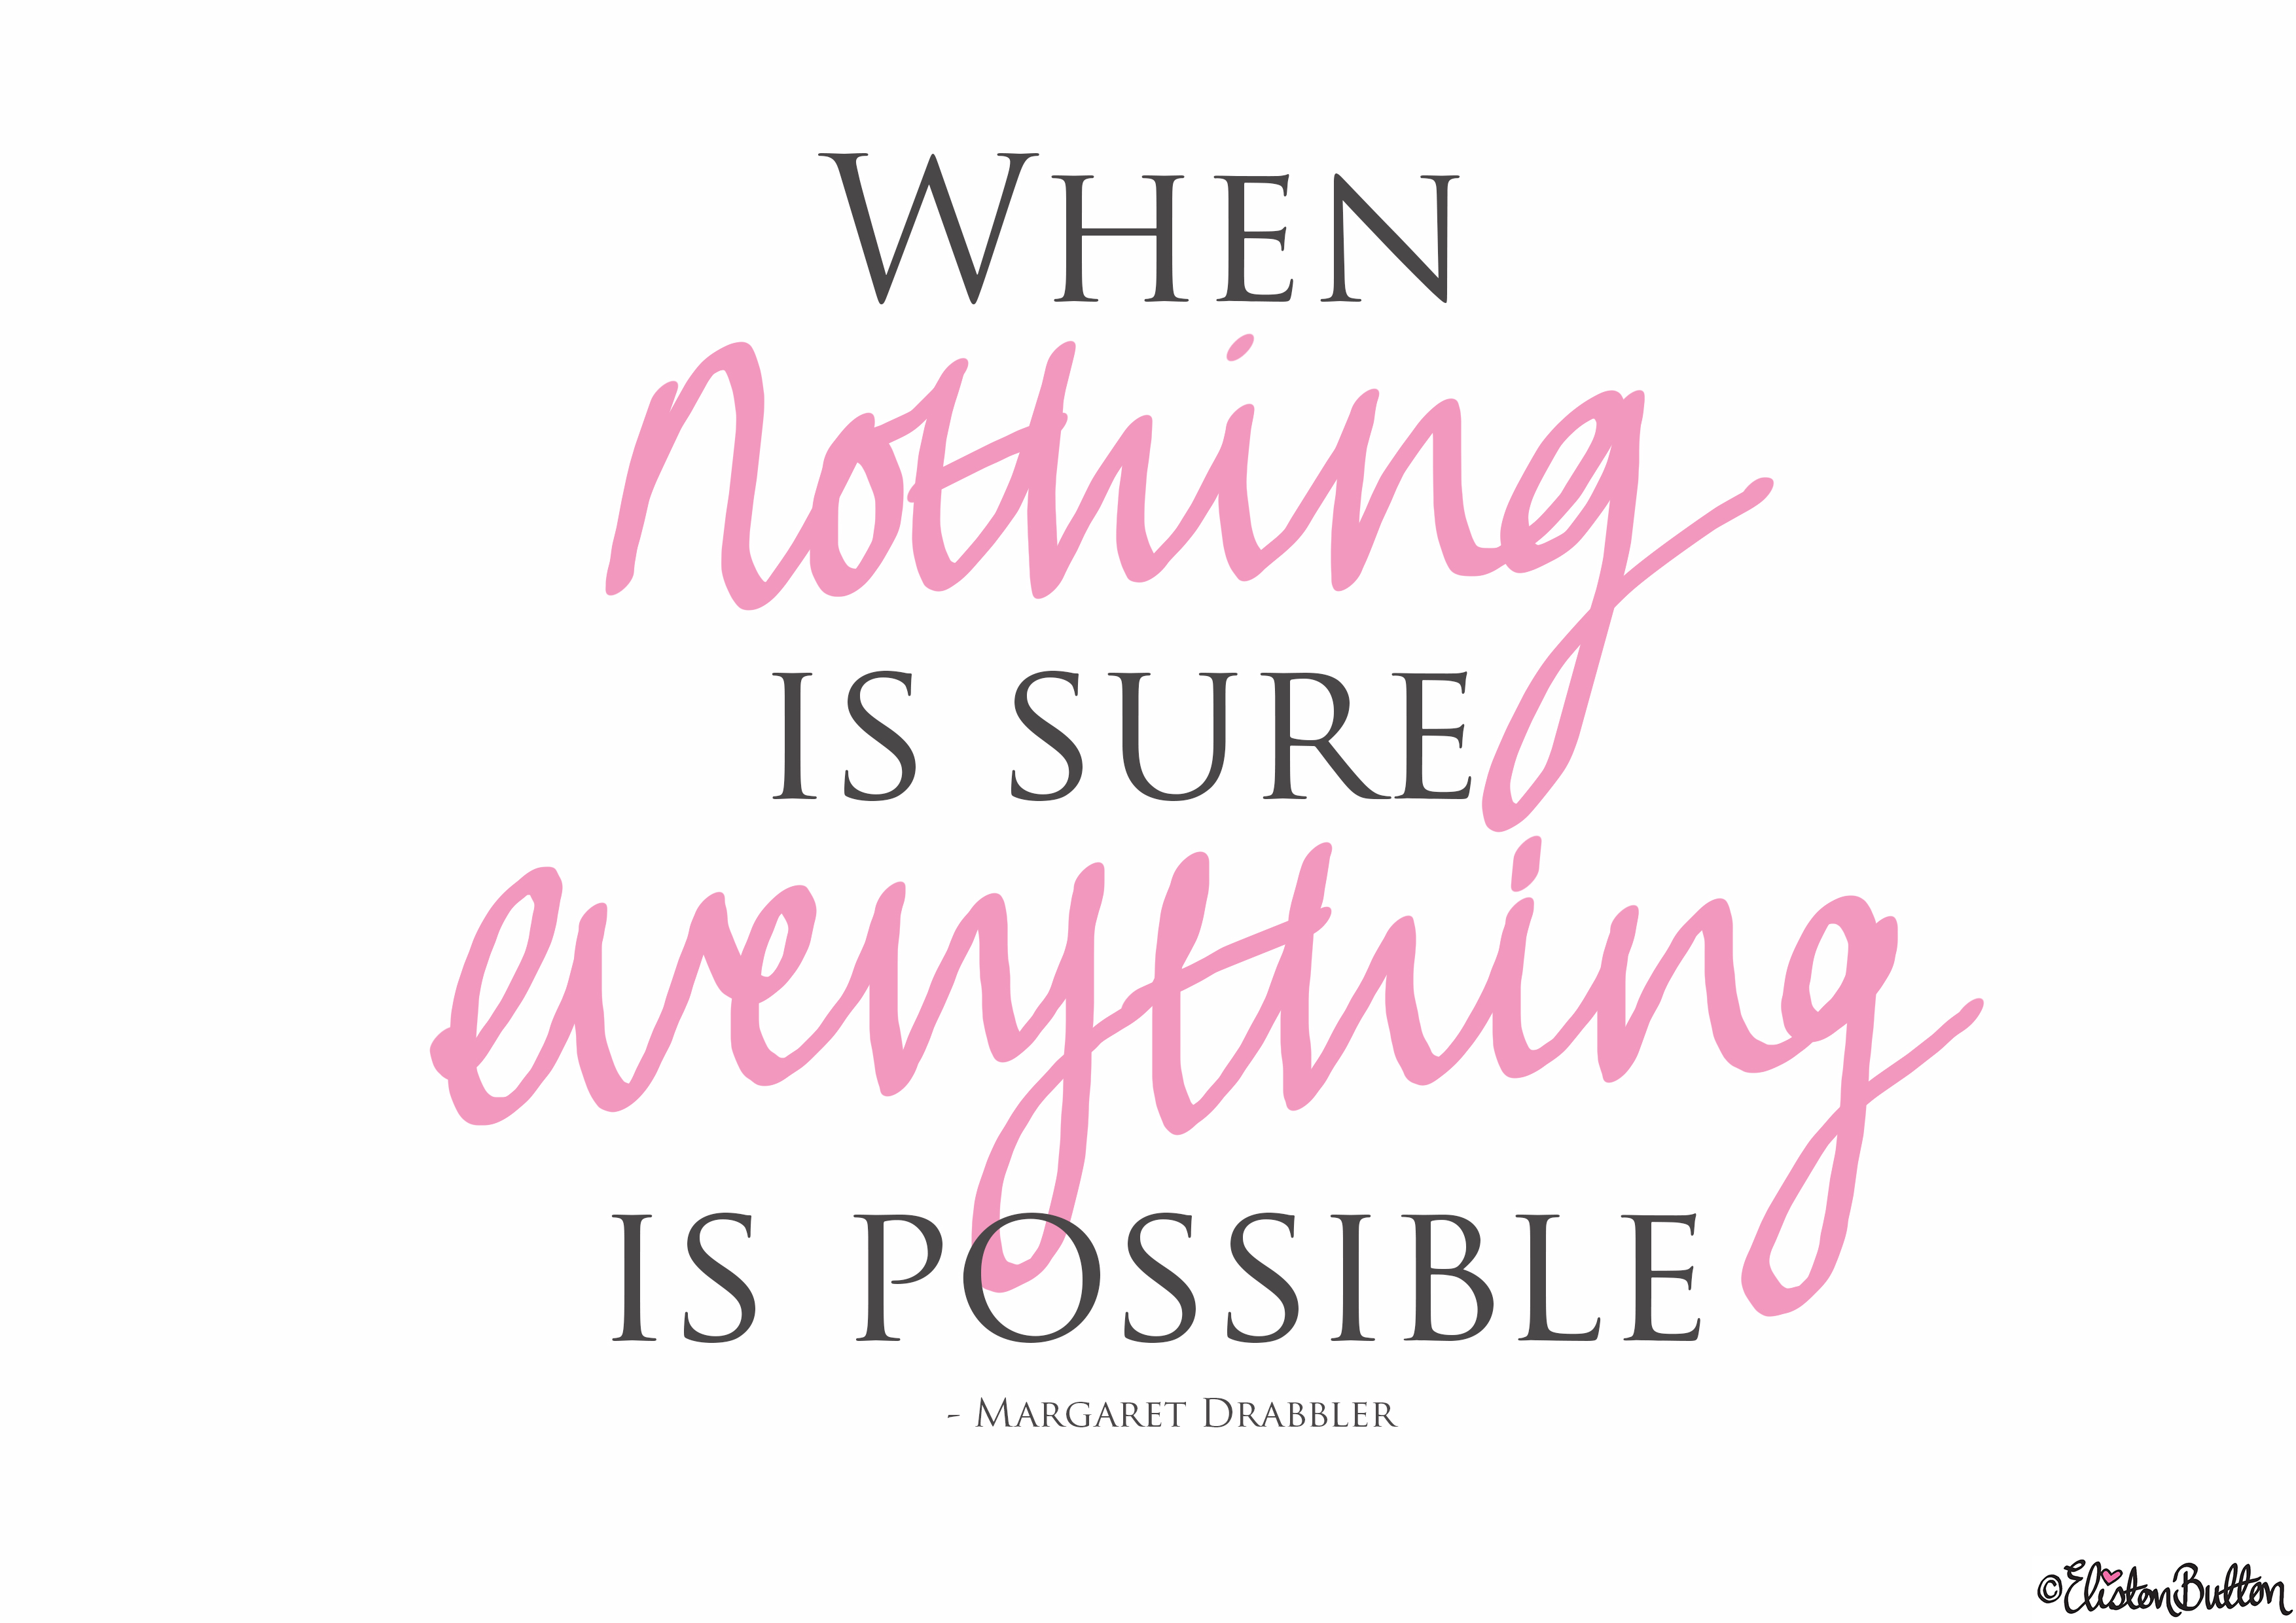 Anything is Possible Quote - Create 28 - A New Eliston Button Blog Challenge! at www.elistonbutton.com - Eliston Button - That Crafty Kid – Art, Design, Craft & Adventure.